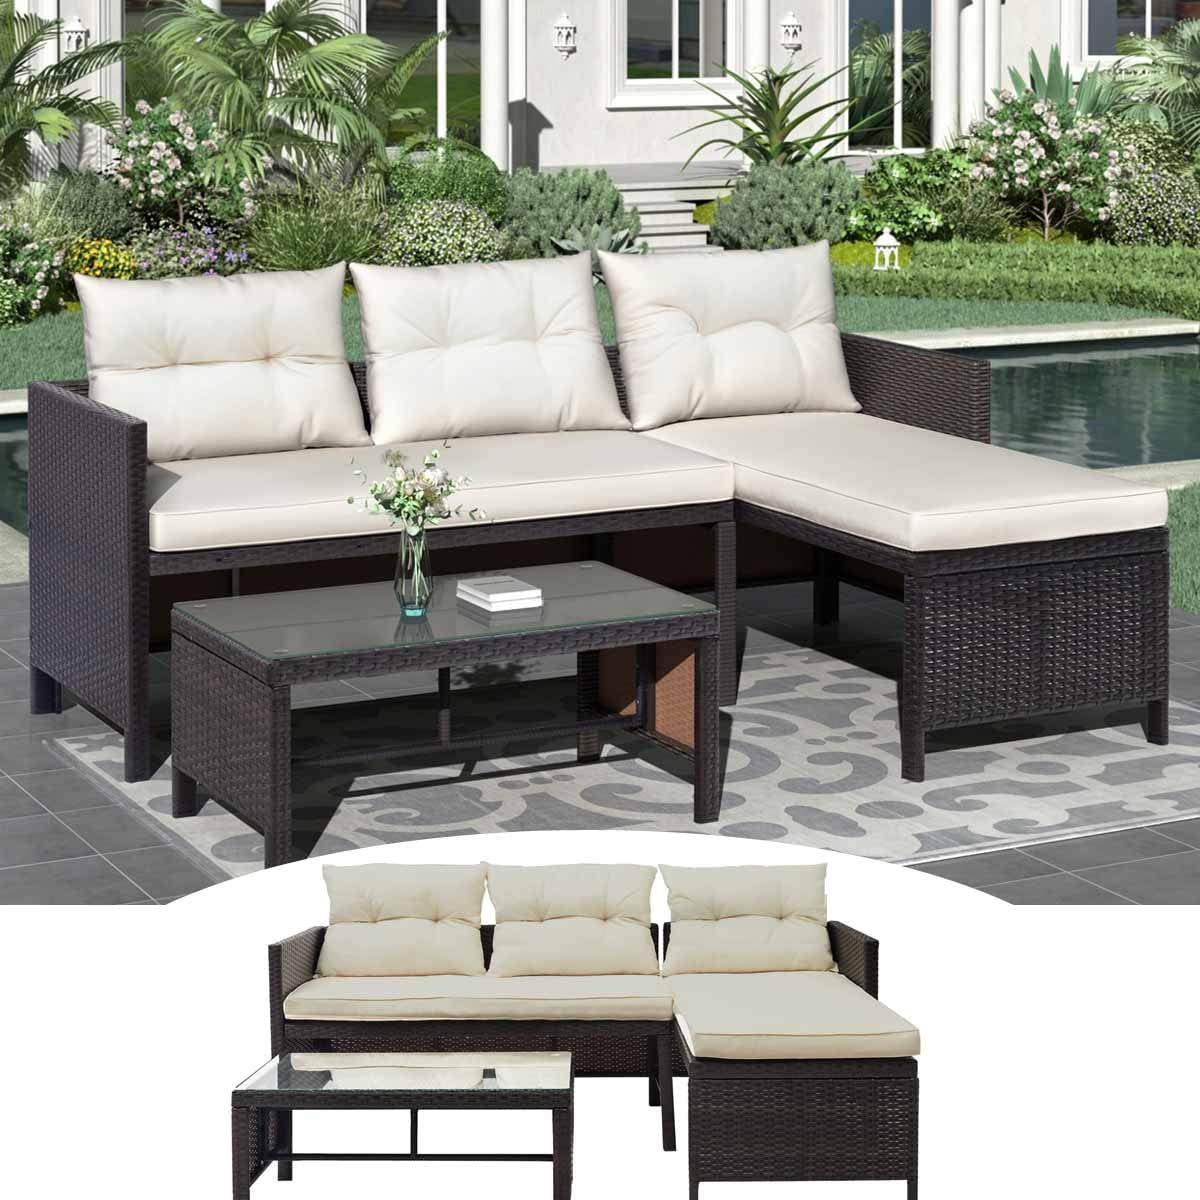 70.9''L- Patio Furniture 3 Pcs with Double Seat and Chaise Lounge Couch Seat Brown Rattan Wicker Sofa Set with Thicken Cushions